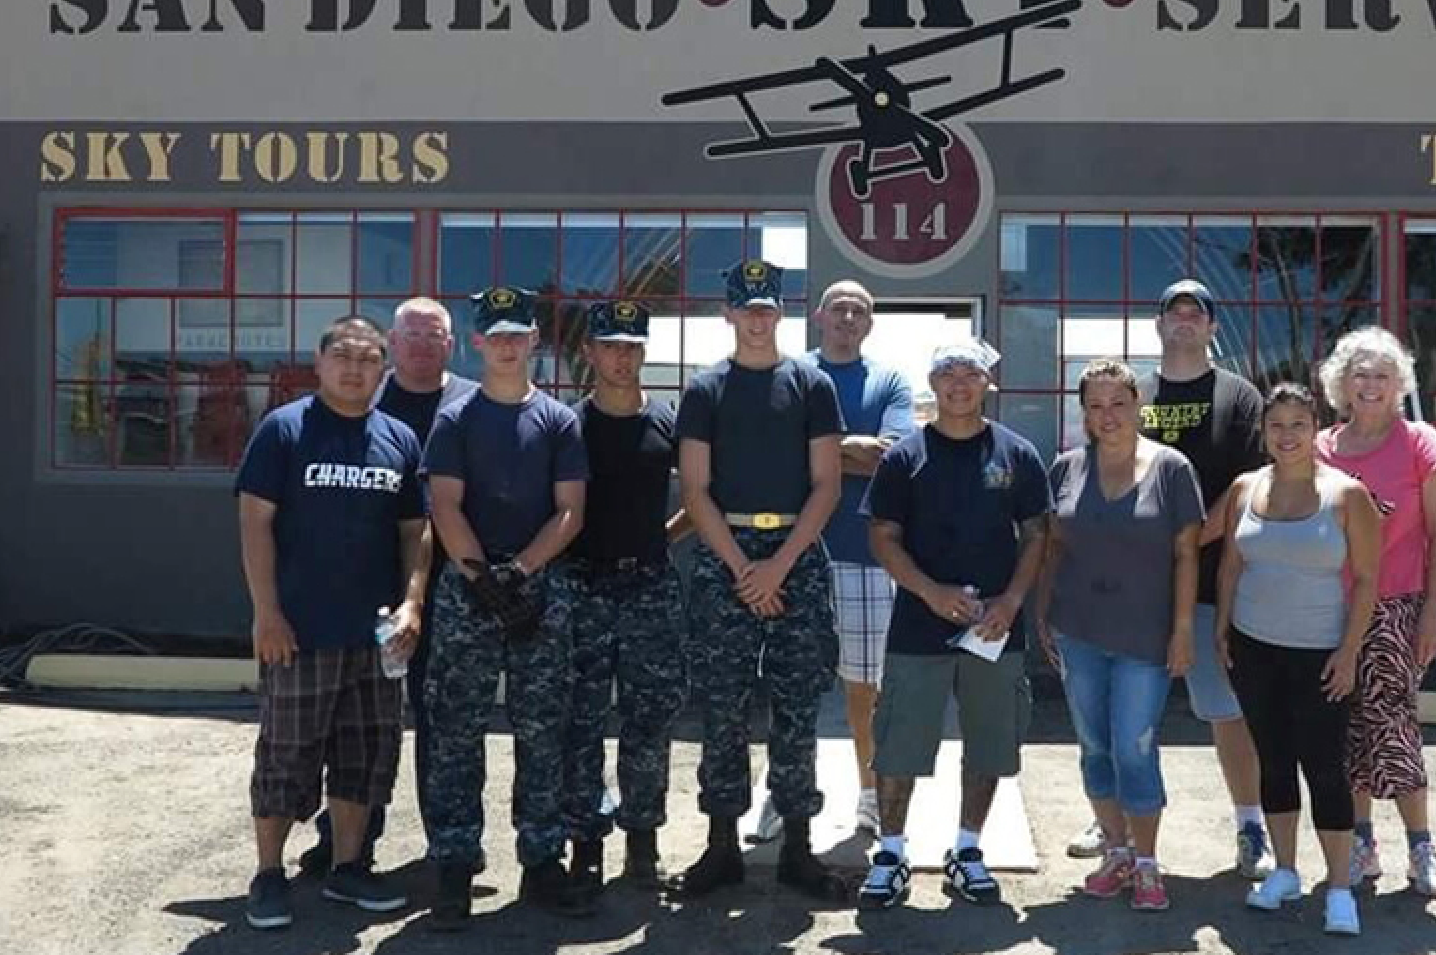 Navy personnel participating in aviation events at old Sky Tours hangar.